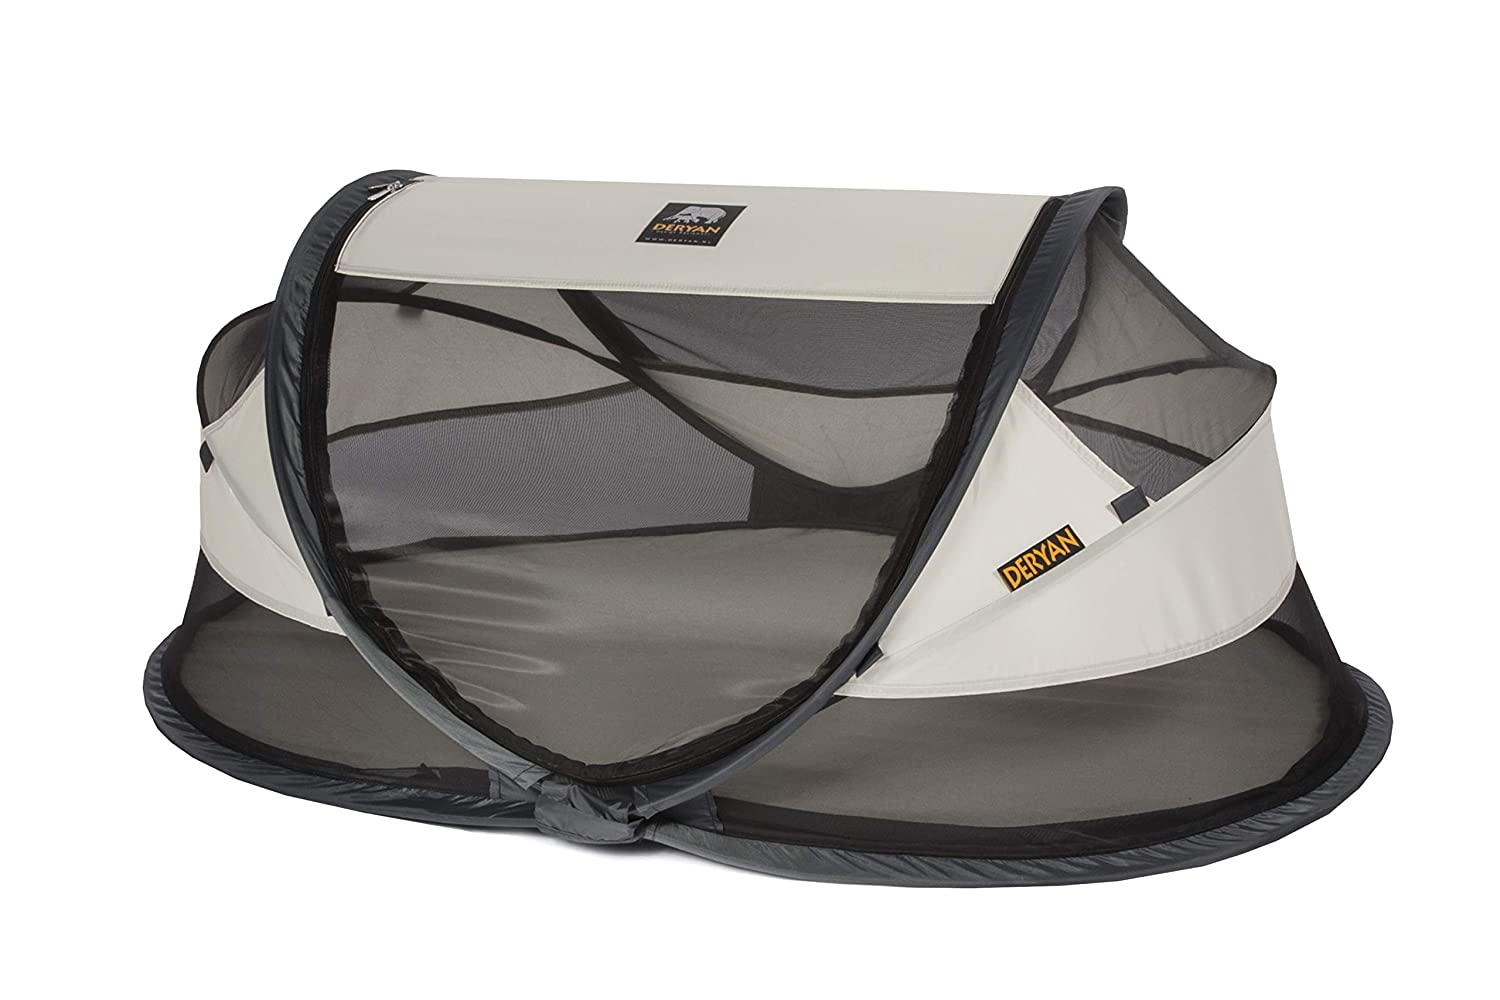 Goede Deryan travel cot / travel cot Baby Luxe travel tent including OQ-94